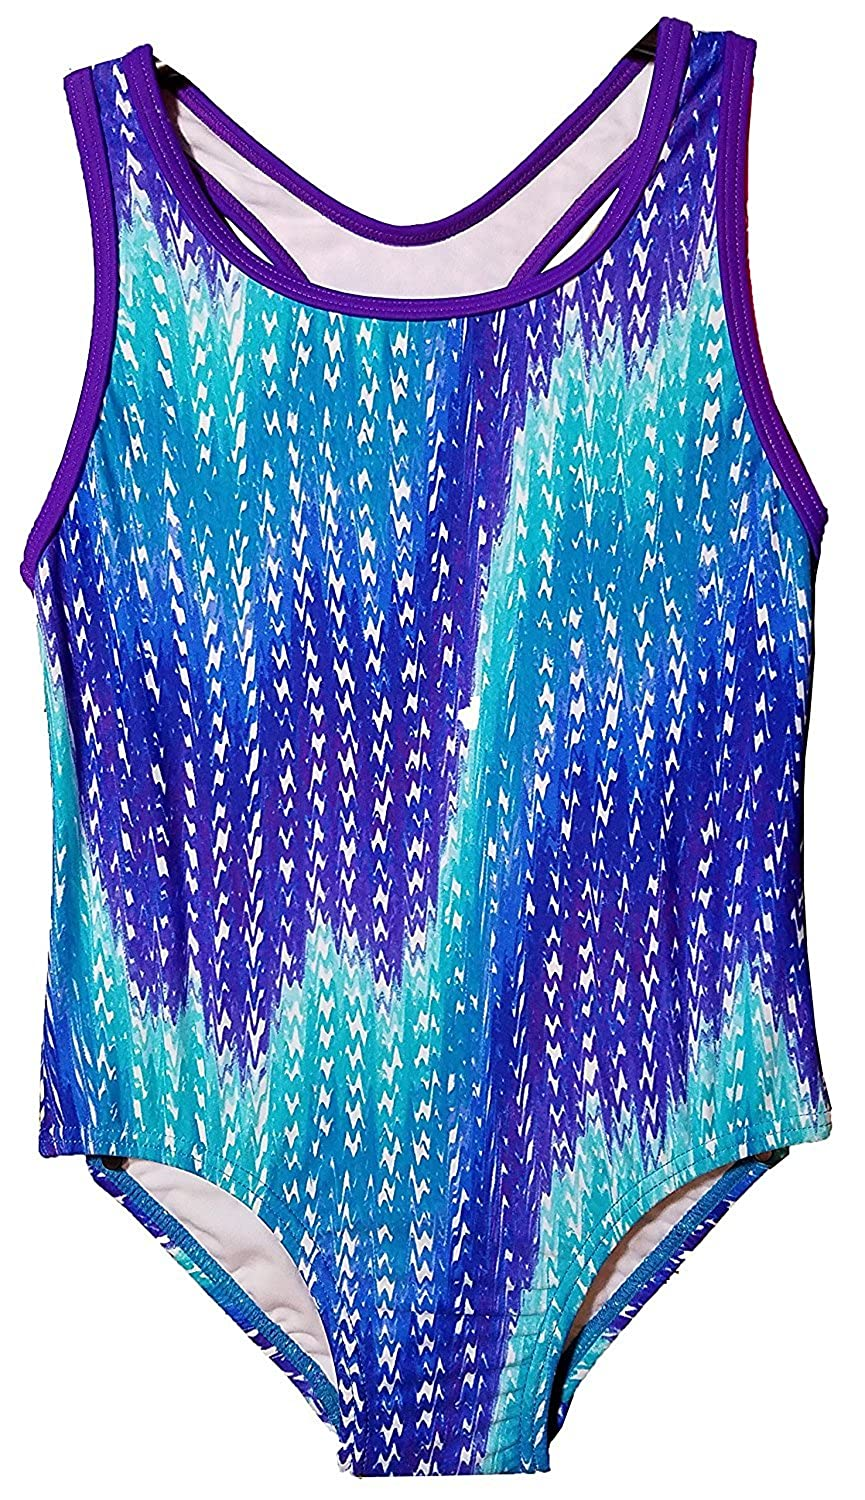 Amazon.com: Speedo Big Girls Solid Infinity Splice One Piece Swimsuit (5, Blue Zig Zag): Clothing